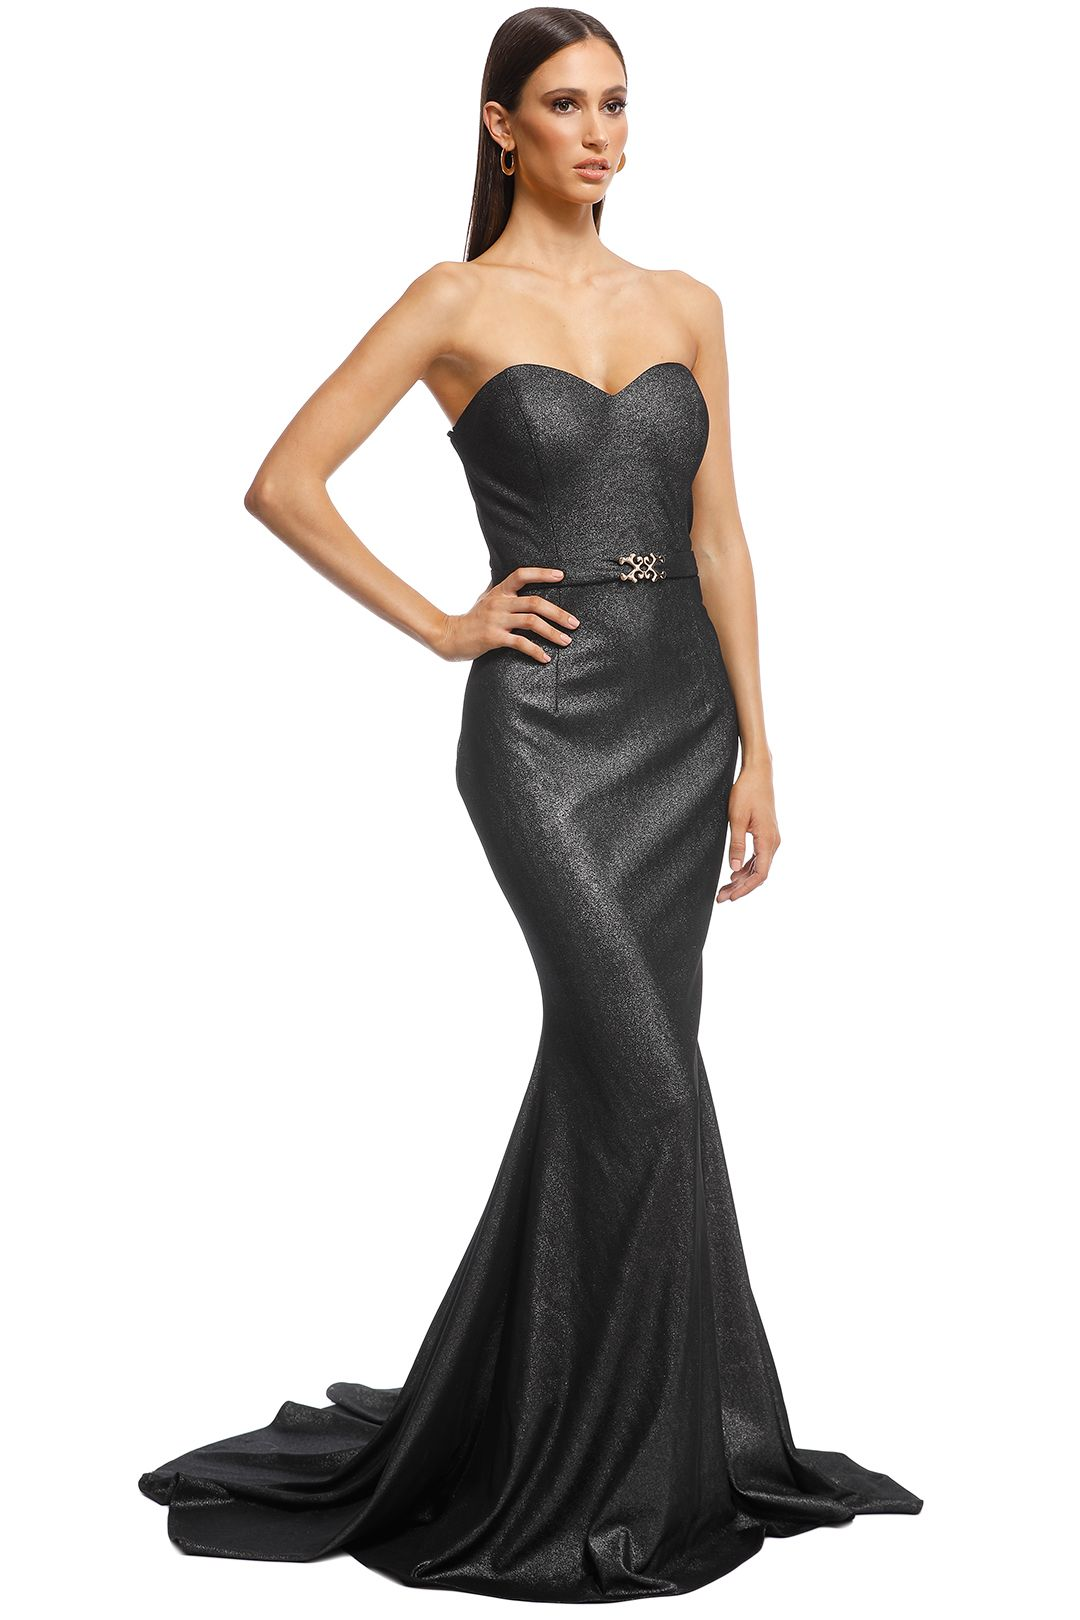 Jadore - Lucille Gown - Platinum - Side